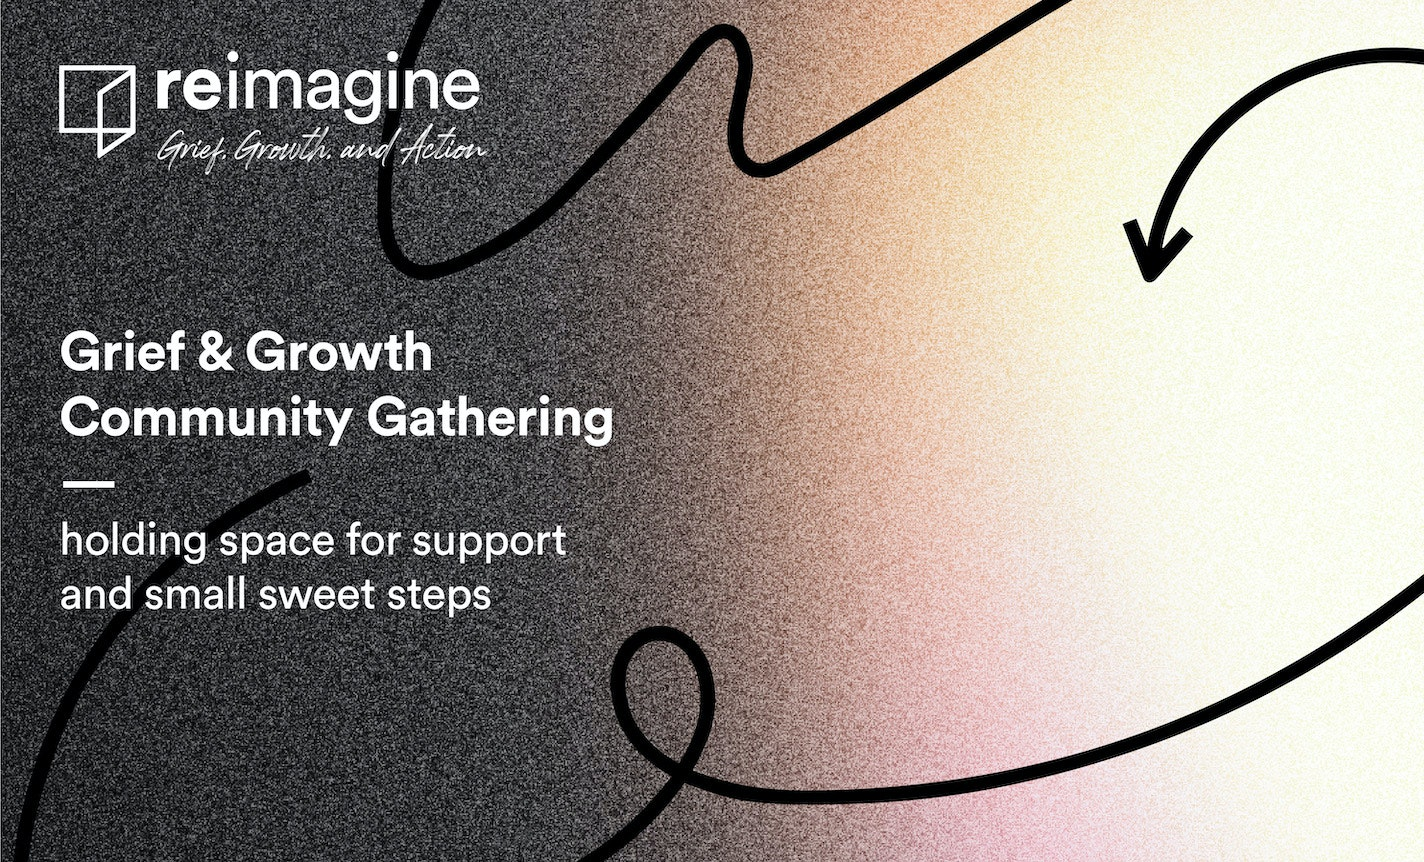 Grief & Growth Community Gathering